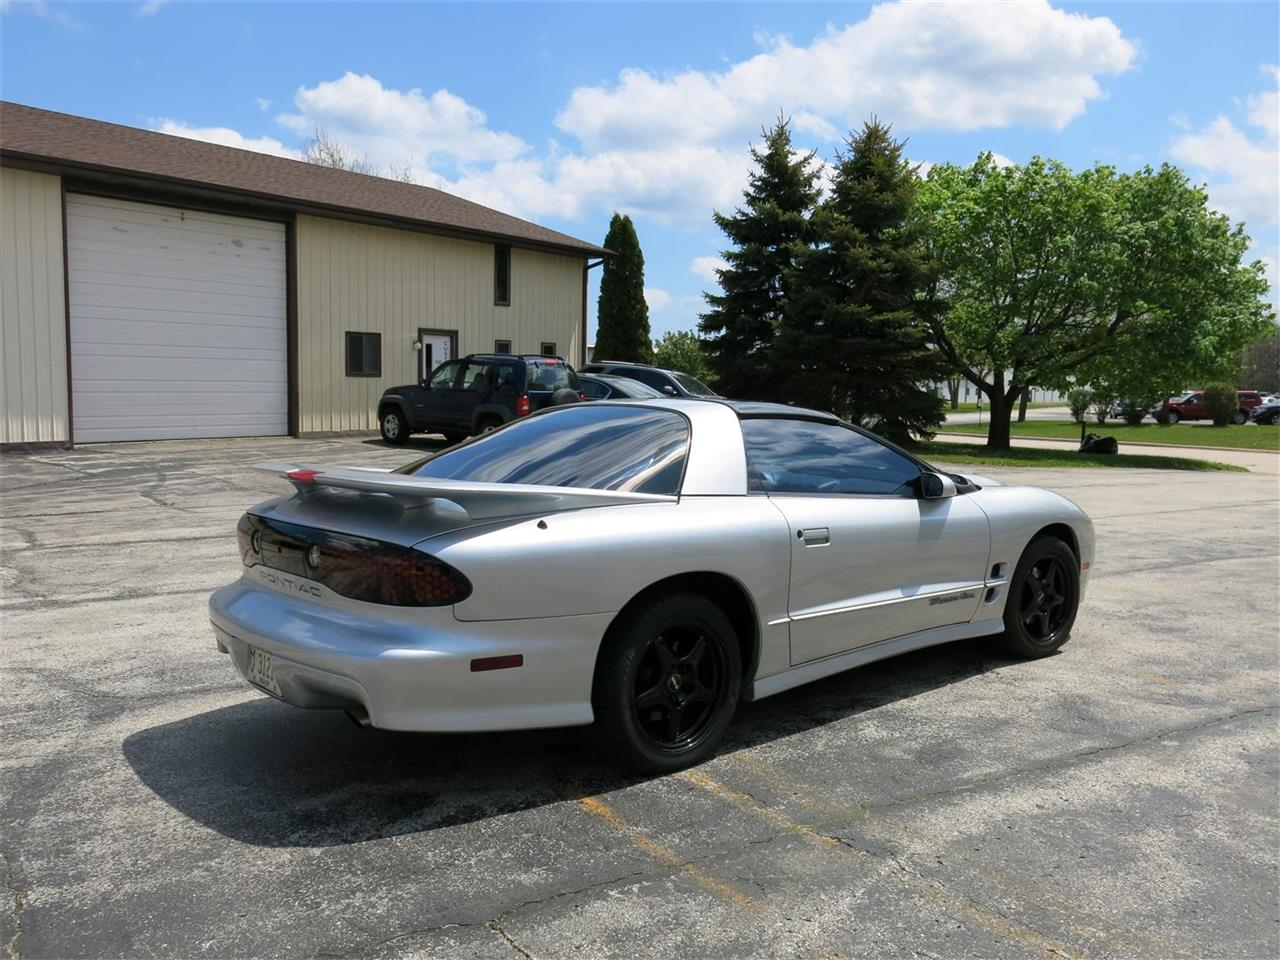 Large Picture of 2000 Pontiac Firebird Trans Am WS6 located in Manitowoc Wisconsin - $11,000.00 - LEKM